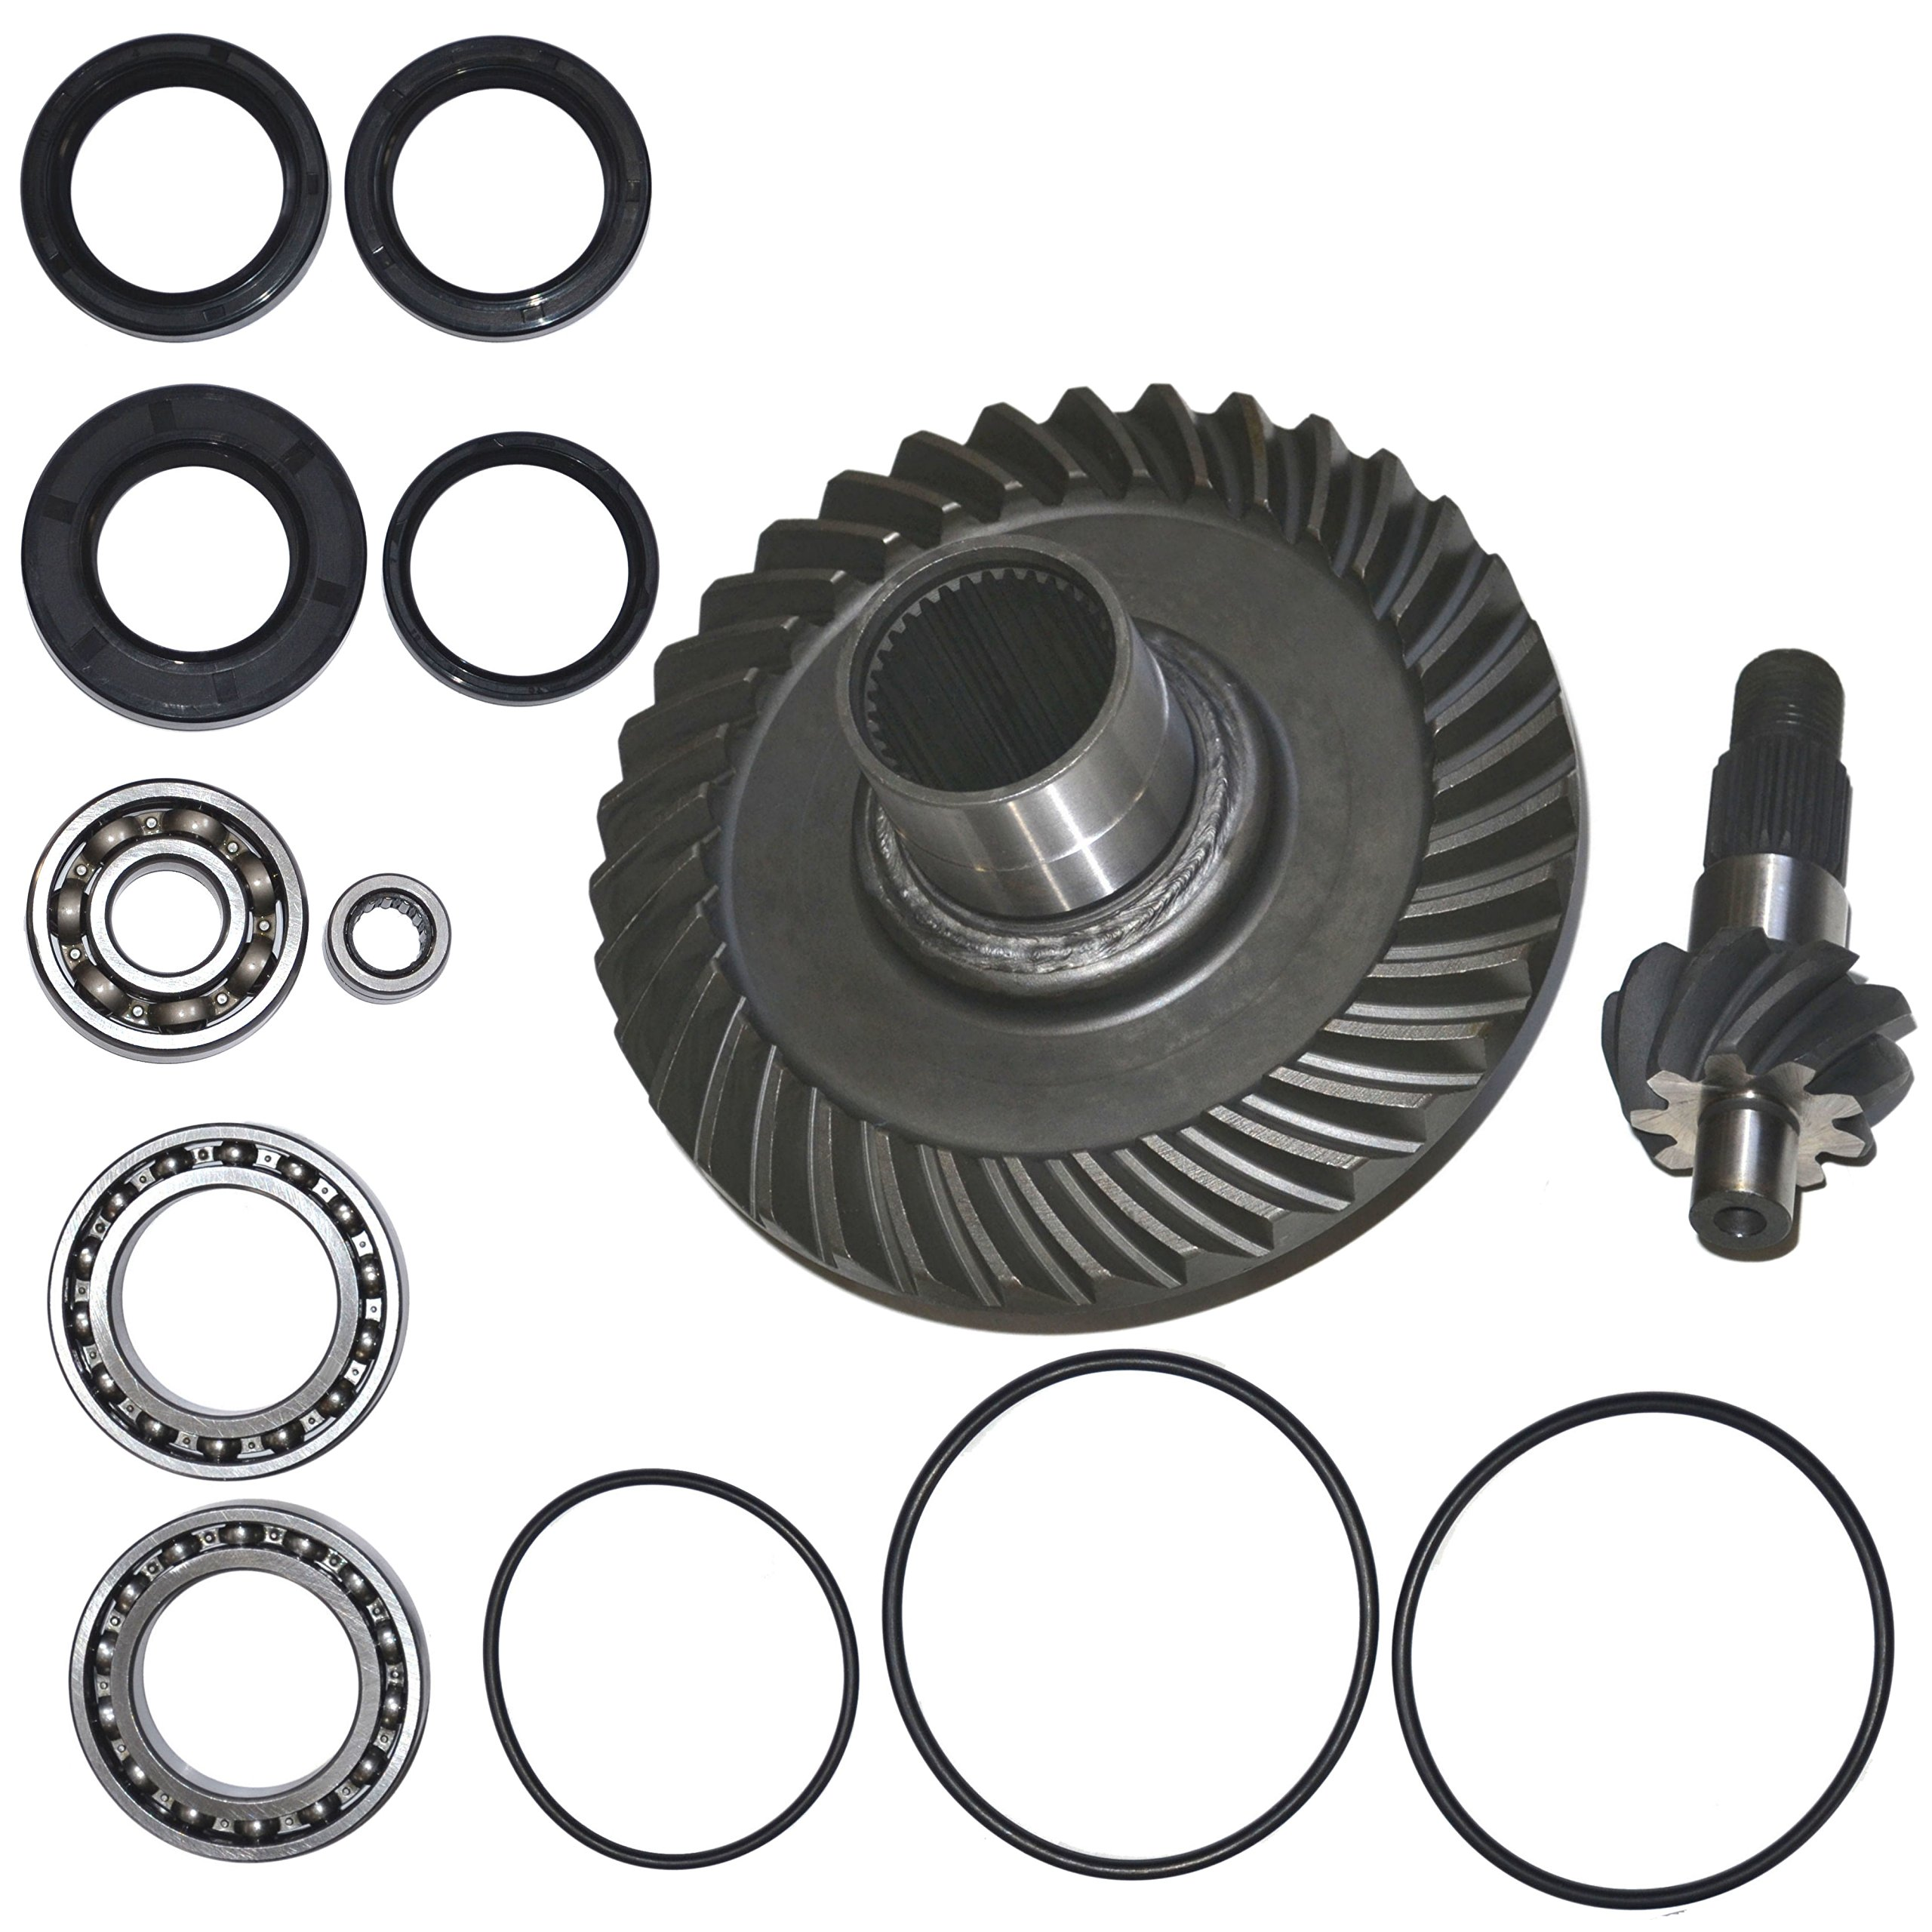 Fourtrax Rear Differential Ring and Pinion Gear & Bearing Fits 1988-2000 Honda TRX300FW 300 by TOP NOTCH PARTS